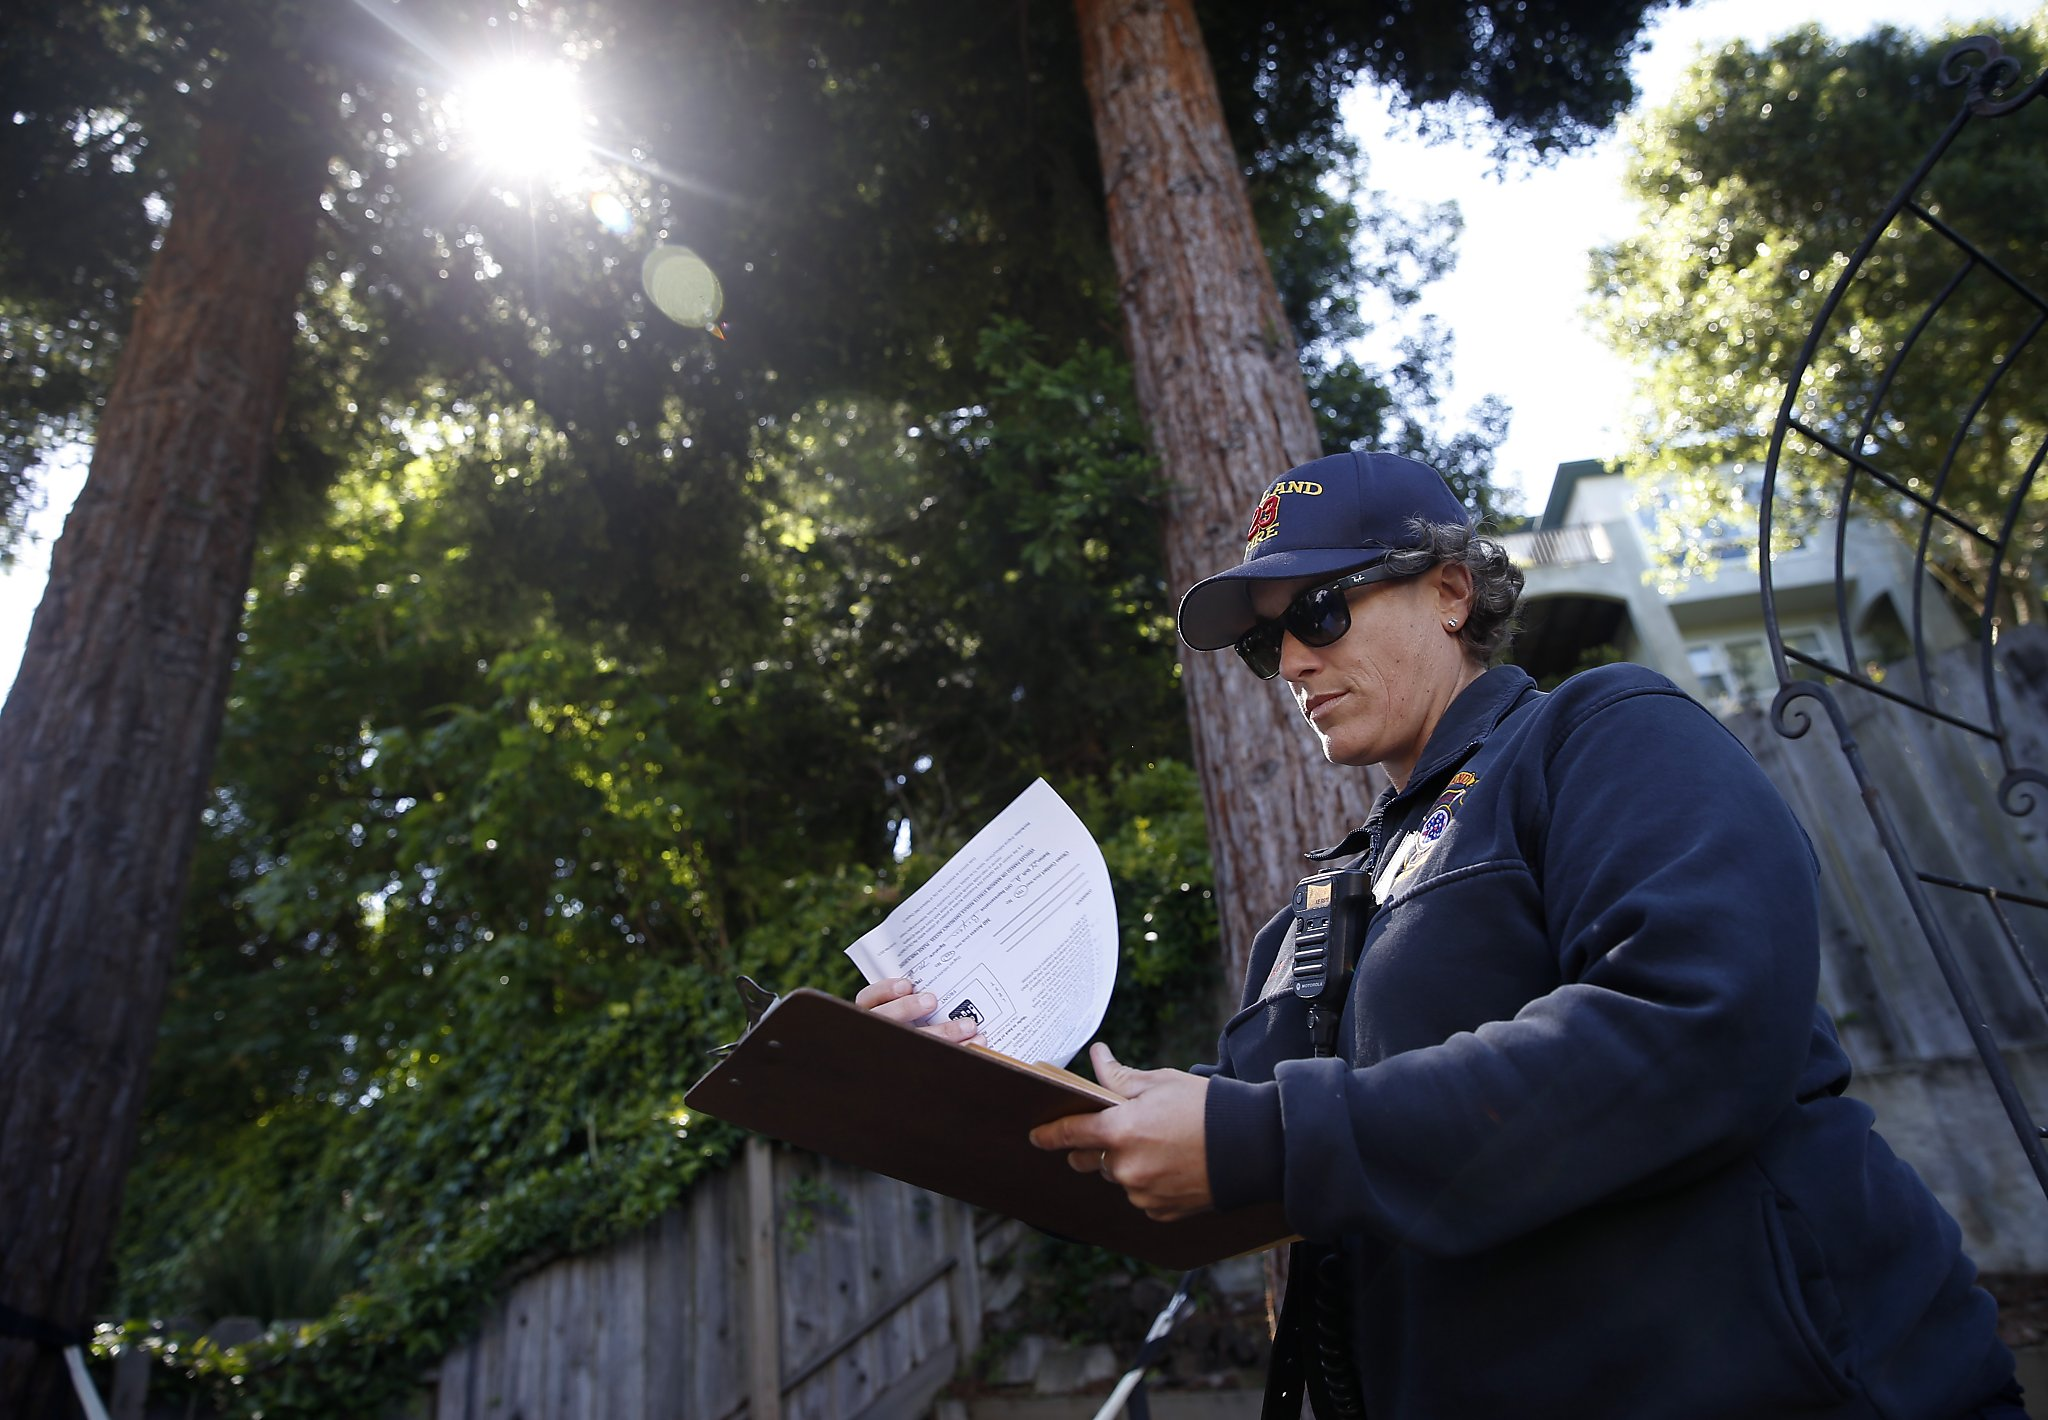 Black firefighter on inspection duty in Oakland hills gets videotaped, reported to police